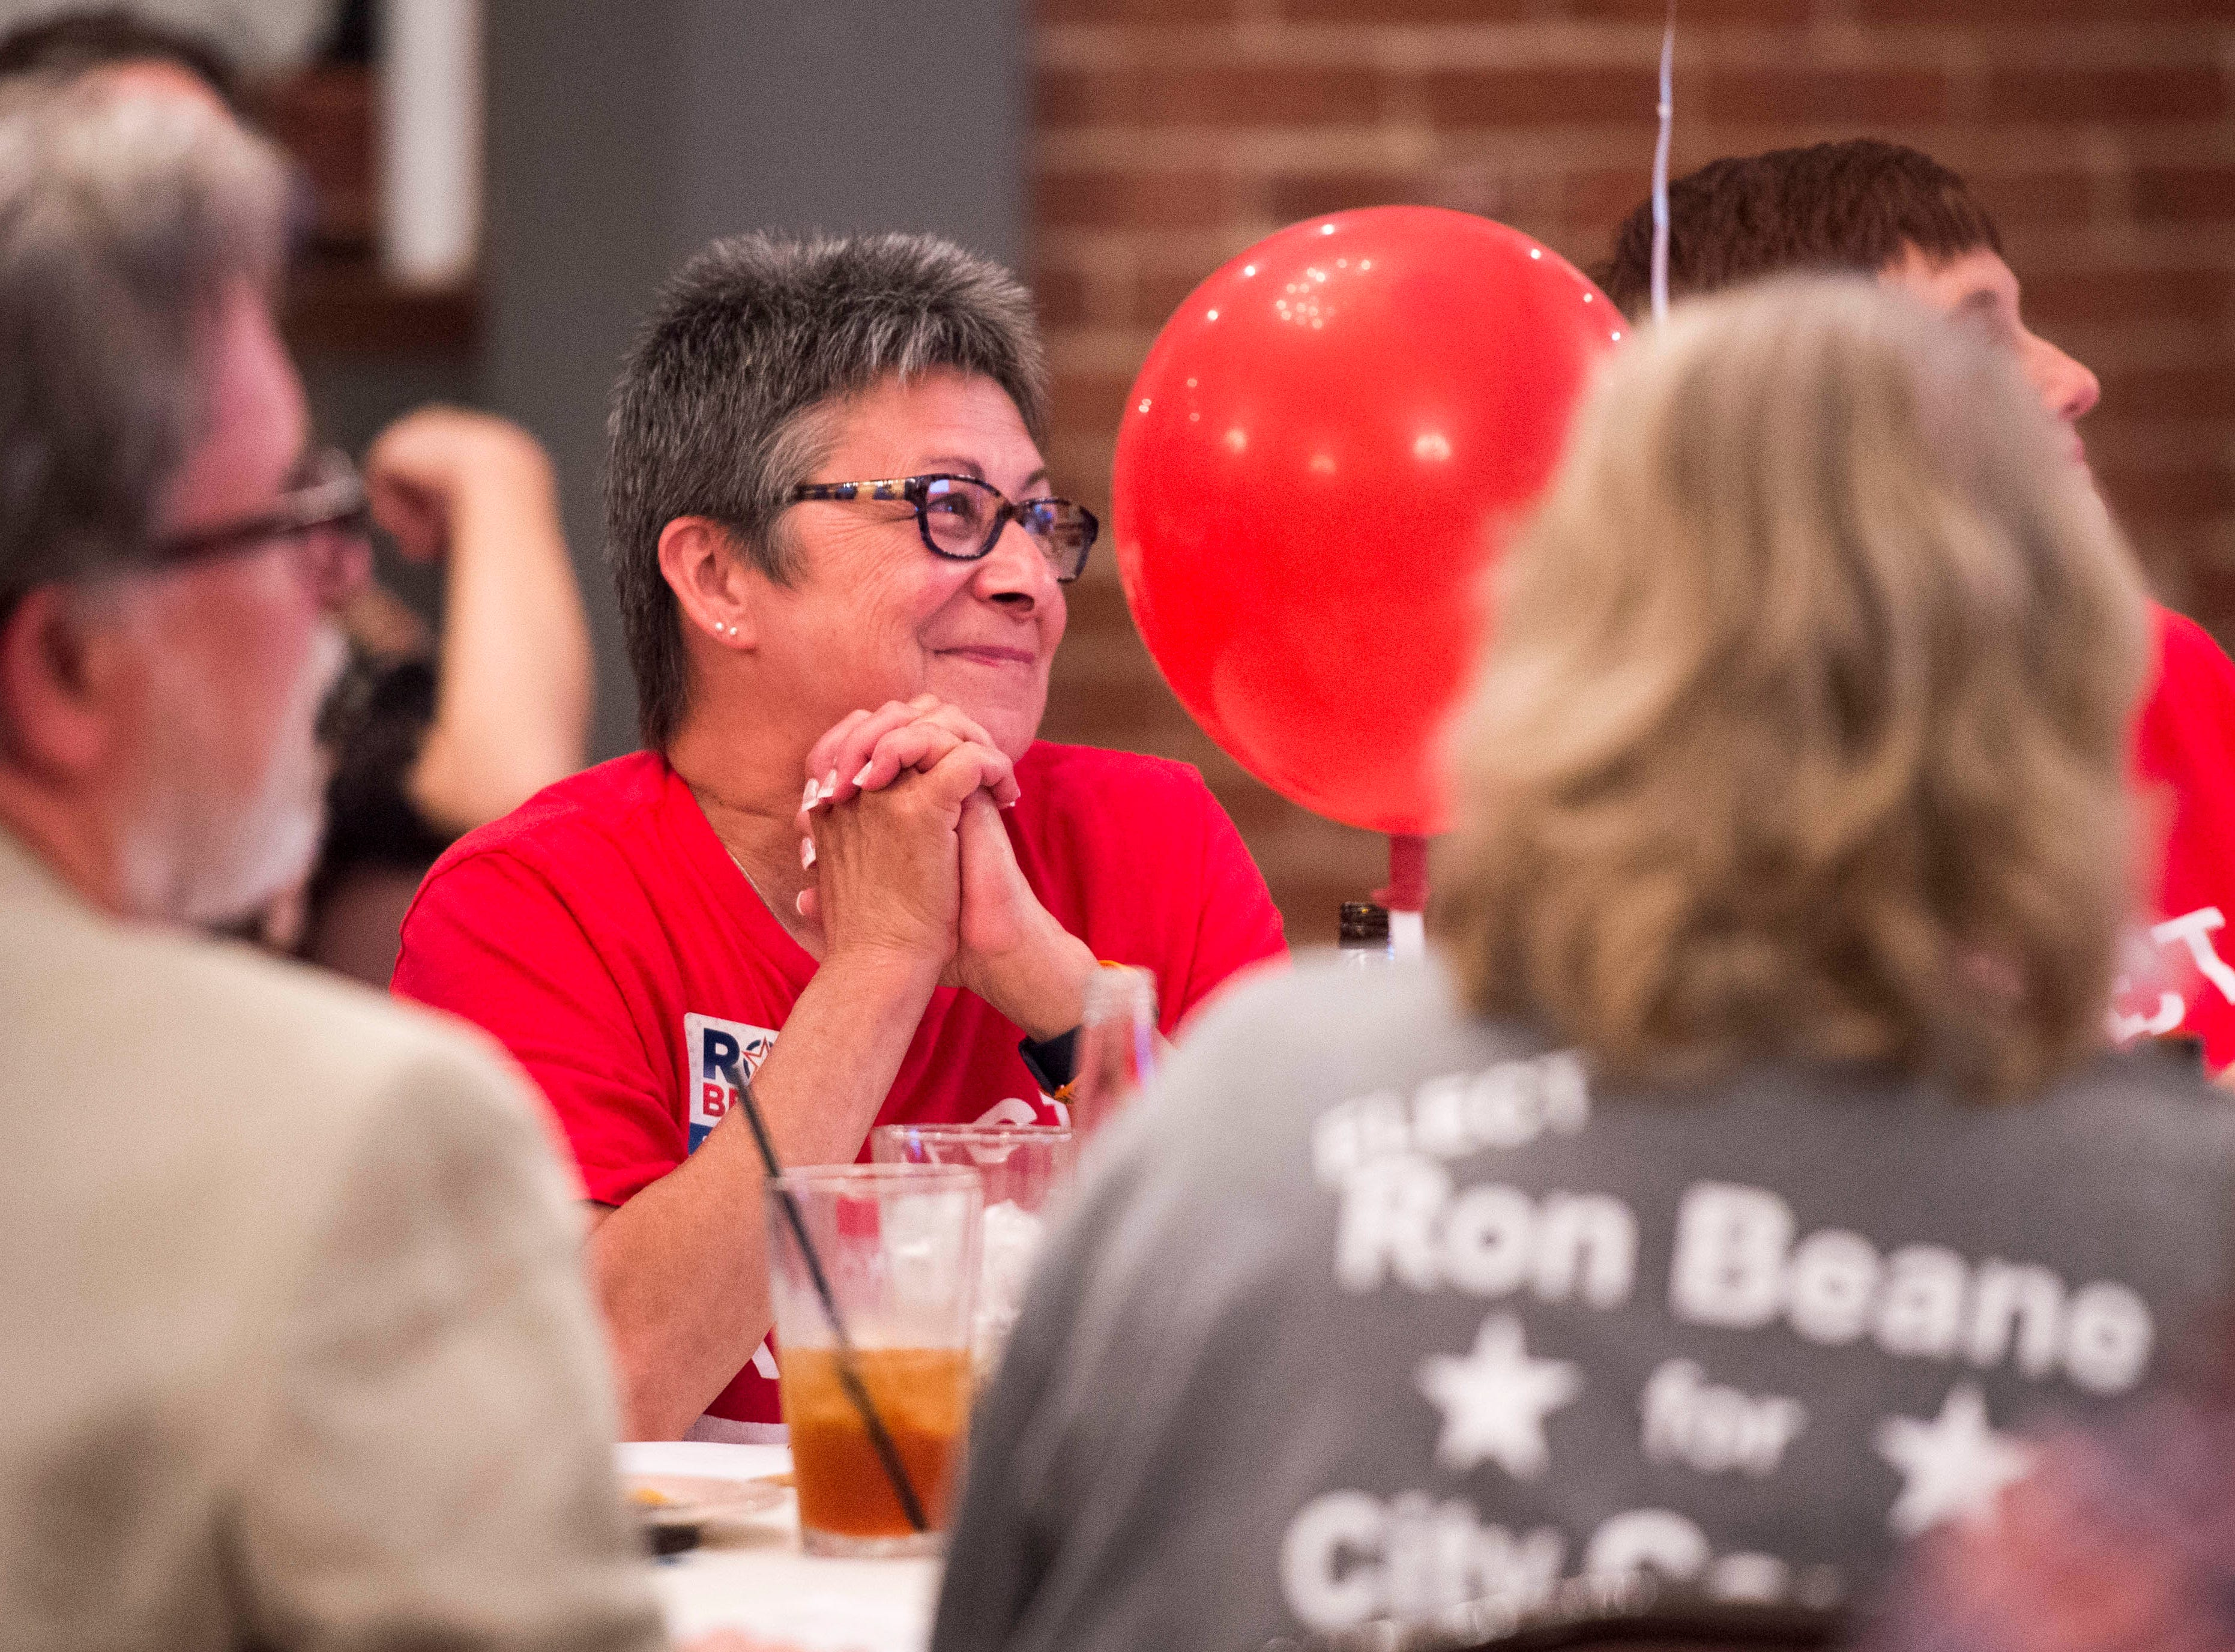 Kim Beane smiles as her husband city council at-large candidate Ron Beane (R) thanks her while addressing the crowd during the Vanderburgh County Republican Party's watch party at Sauced! restaurant on Haynie's Corner Tuesday, May 7, 2019.